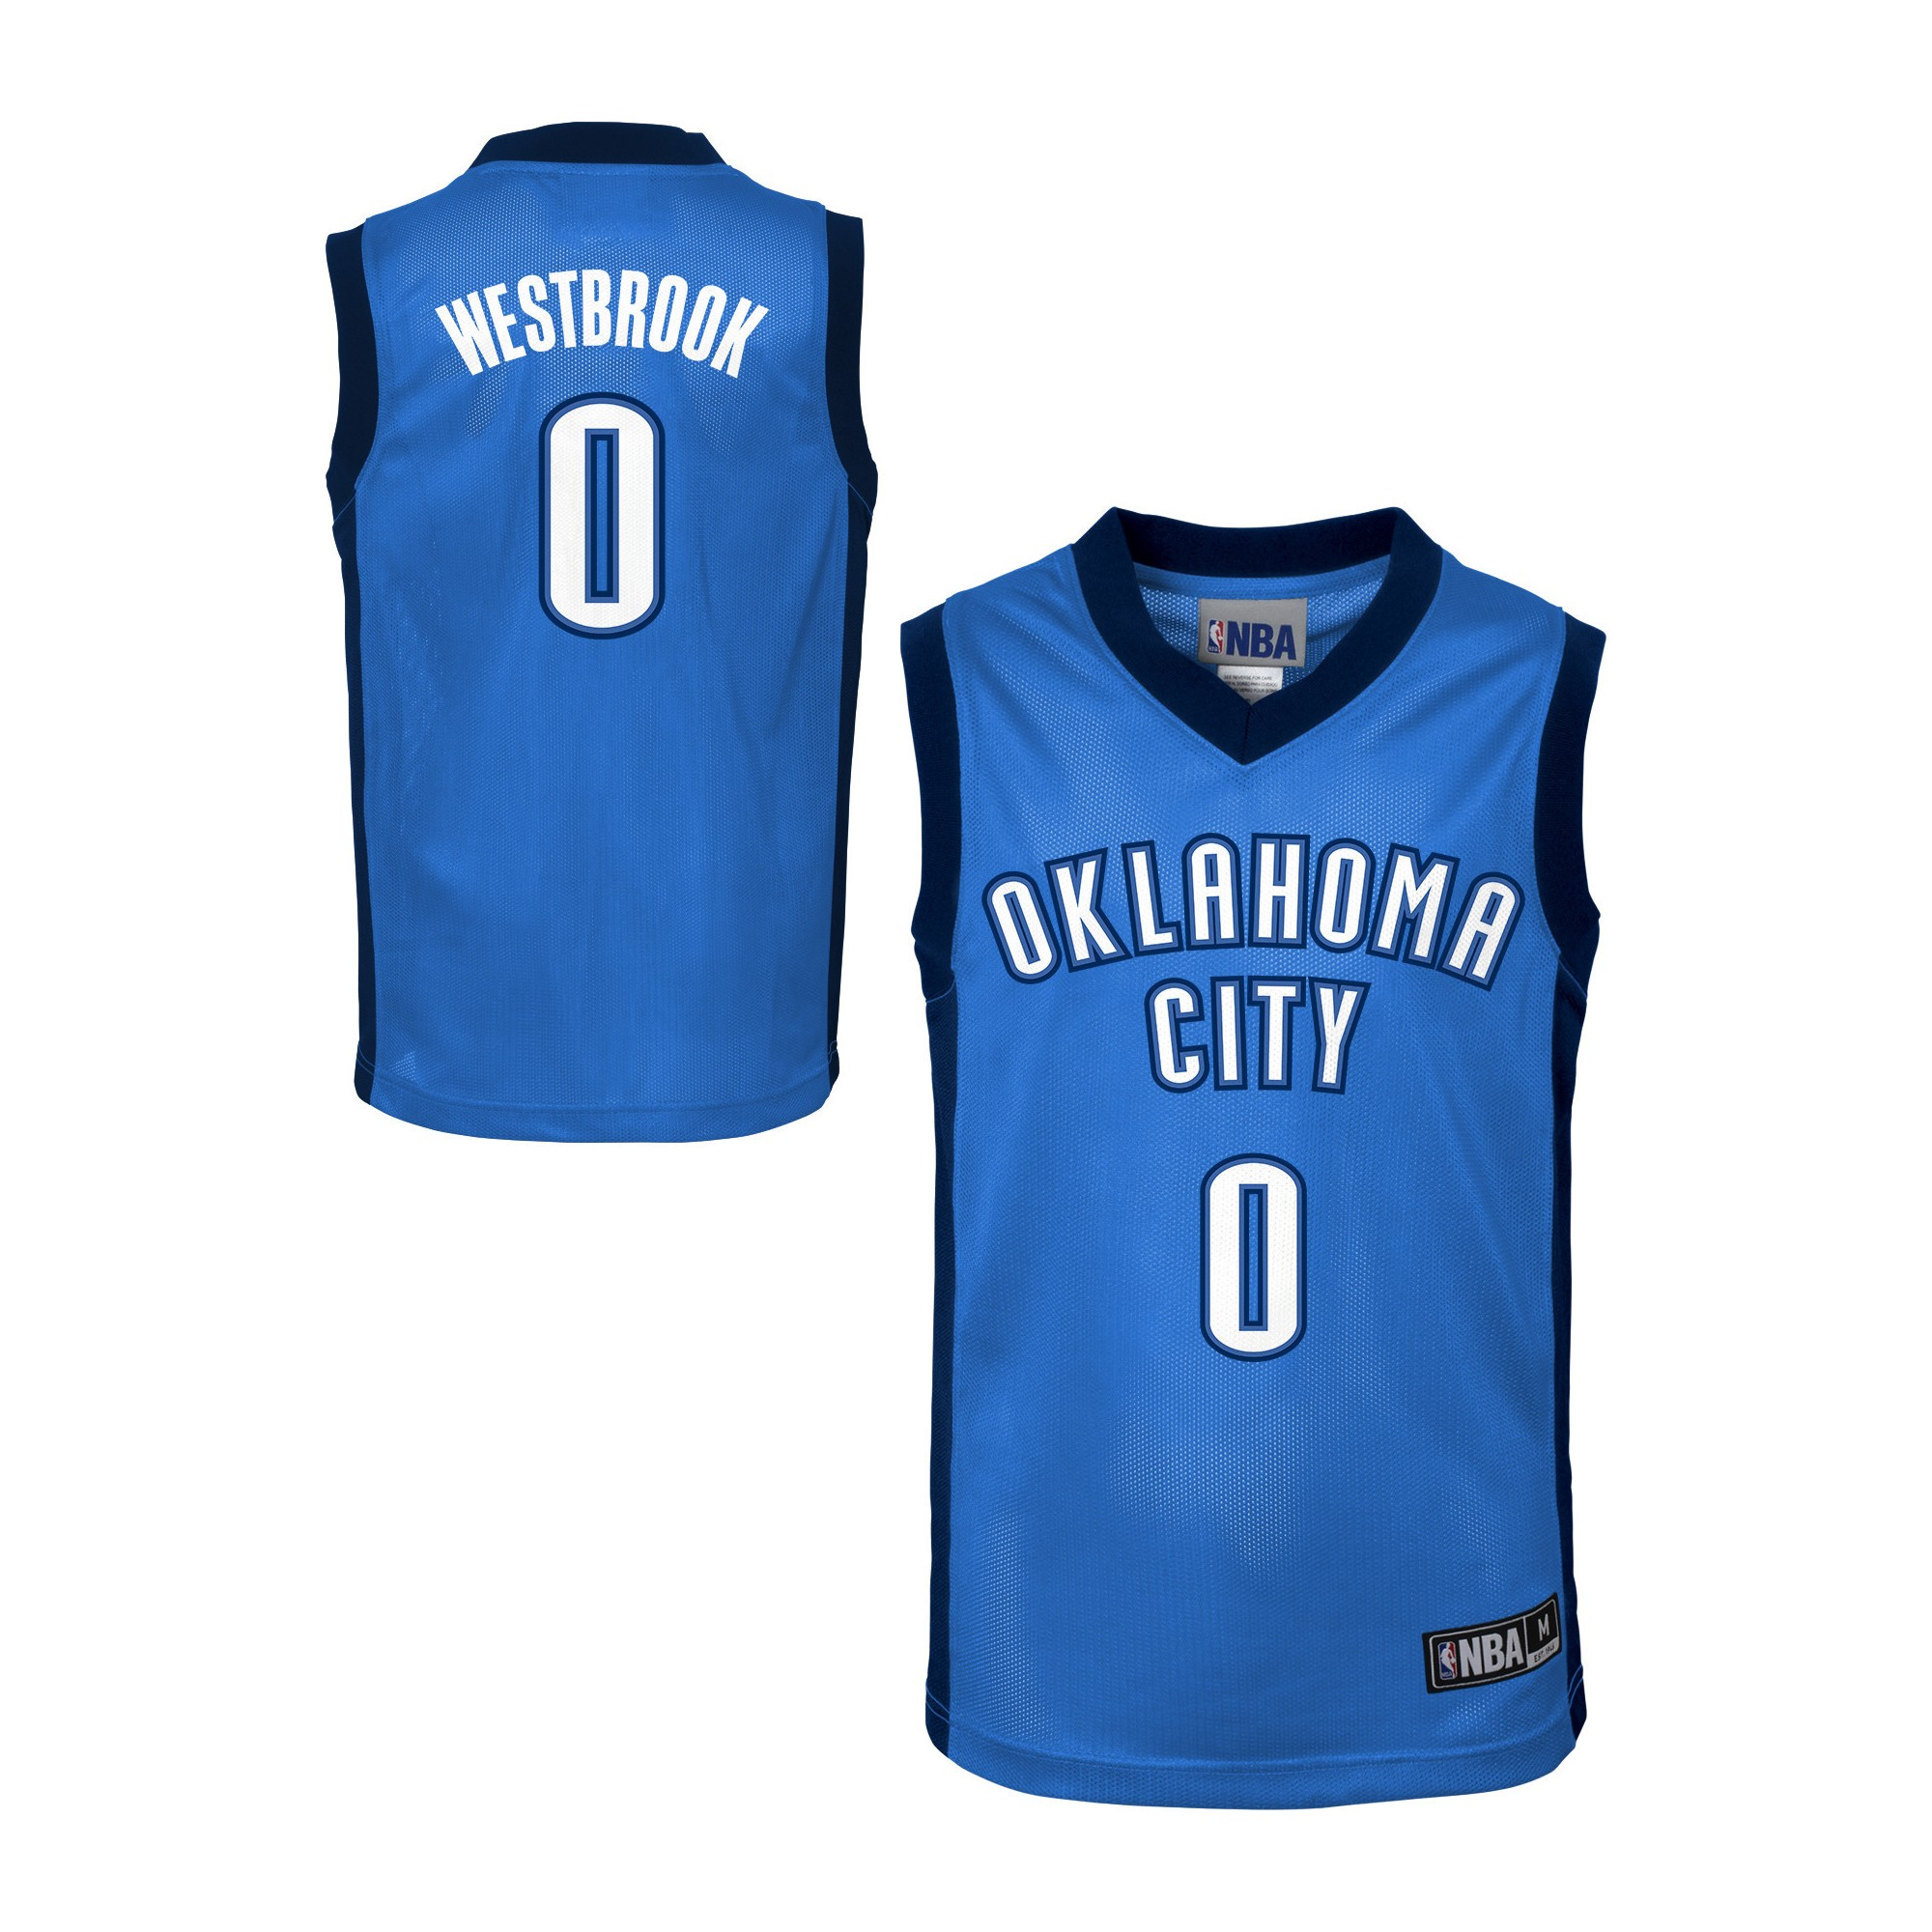 new product fd9e6 57d5d Oklahoma City Thunder Toddler Boys' Russell Westbrook Jersey ...